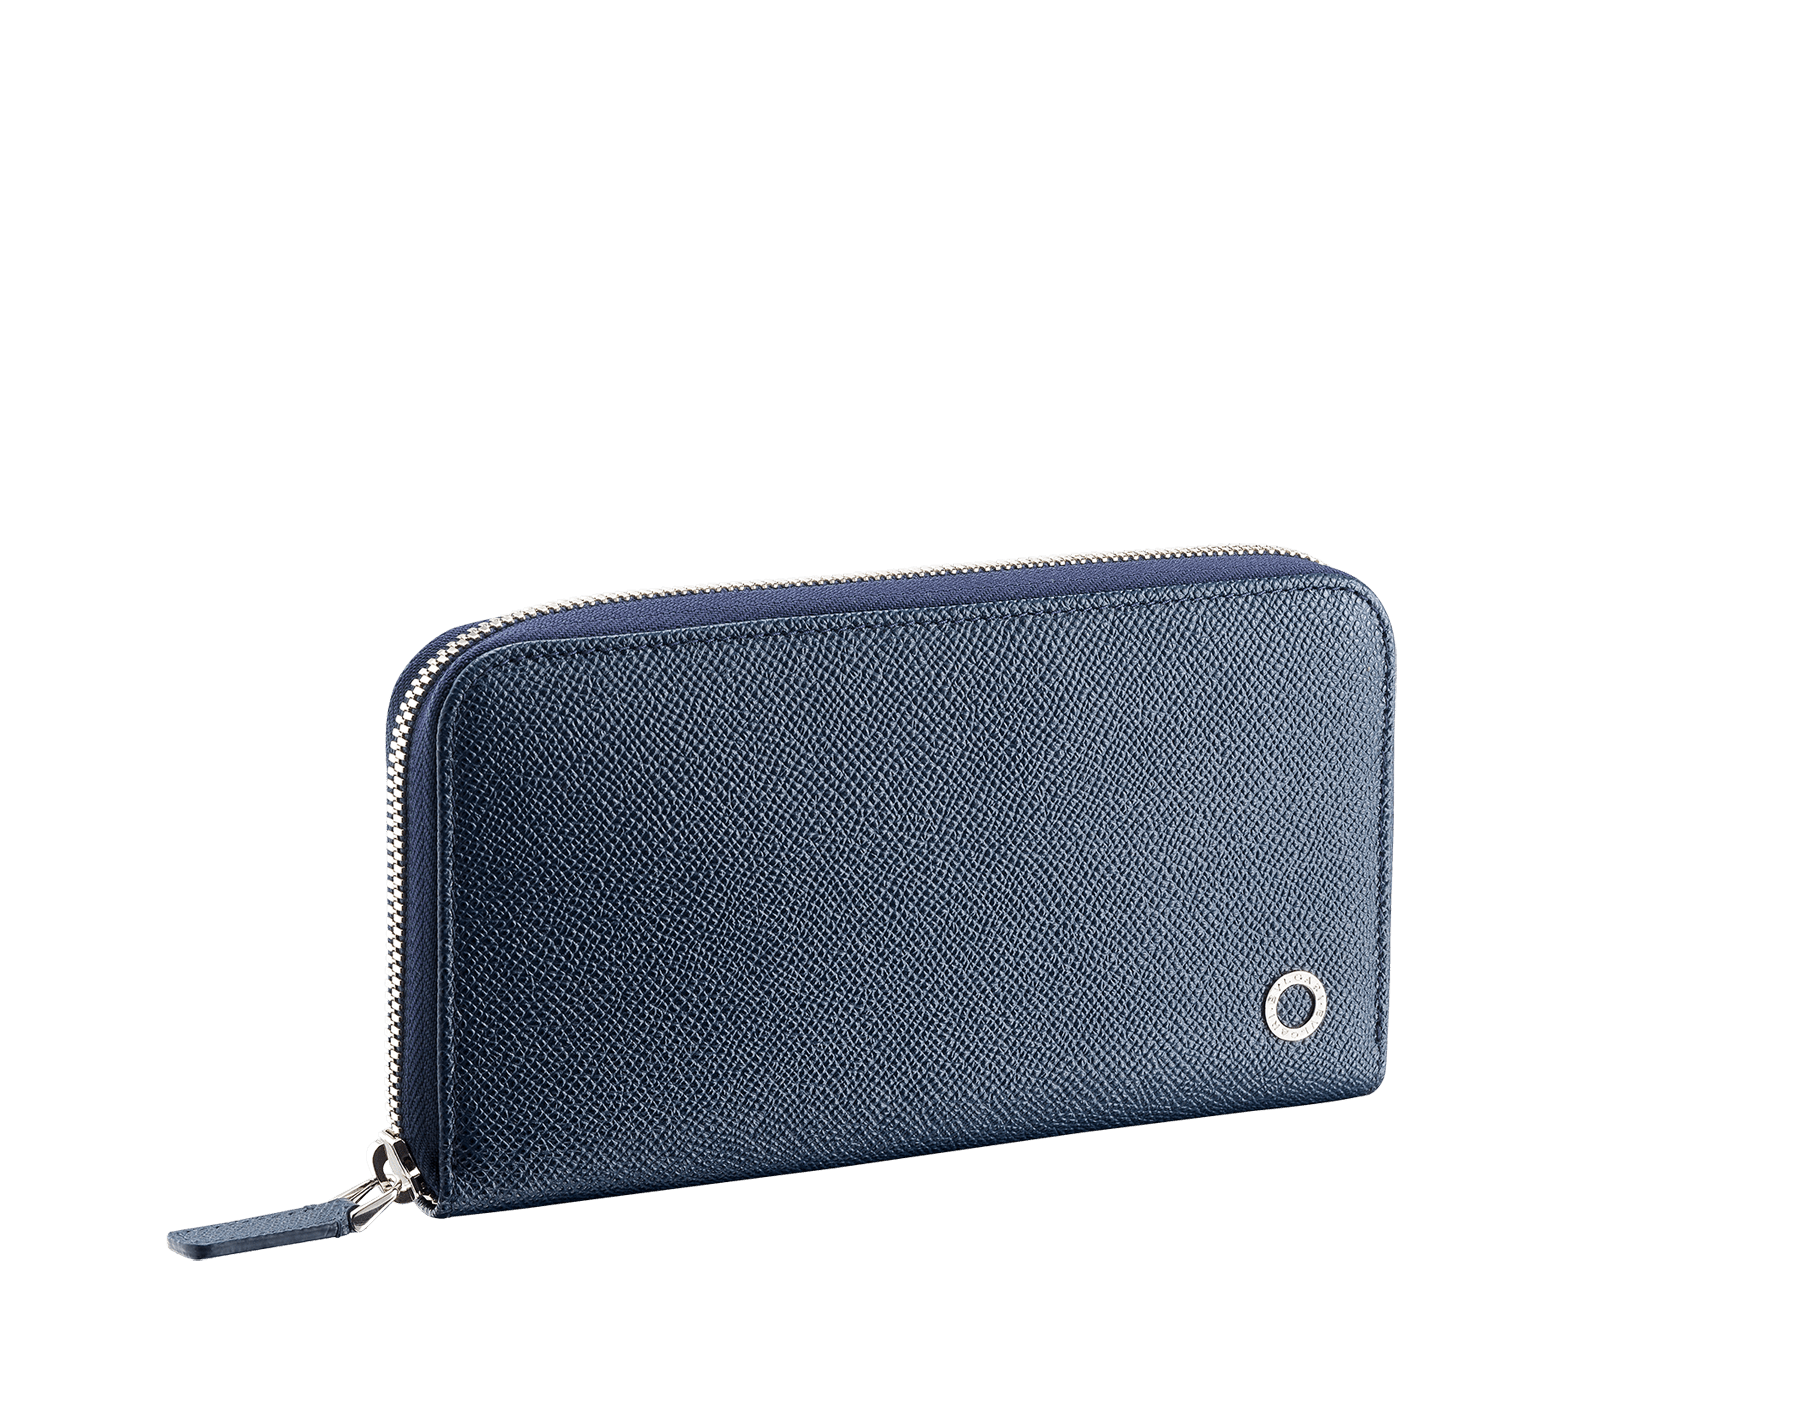 BVLGARI BVLGARI men's zipped wallet in denim sapphire and charcoal diamond grain calf leather and blue slate nappa lining. Iconic logo décor in palladium plated brass. 289102 image 1